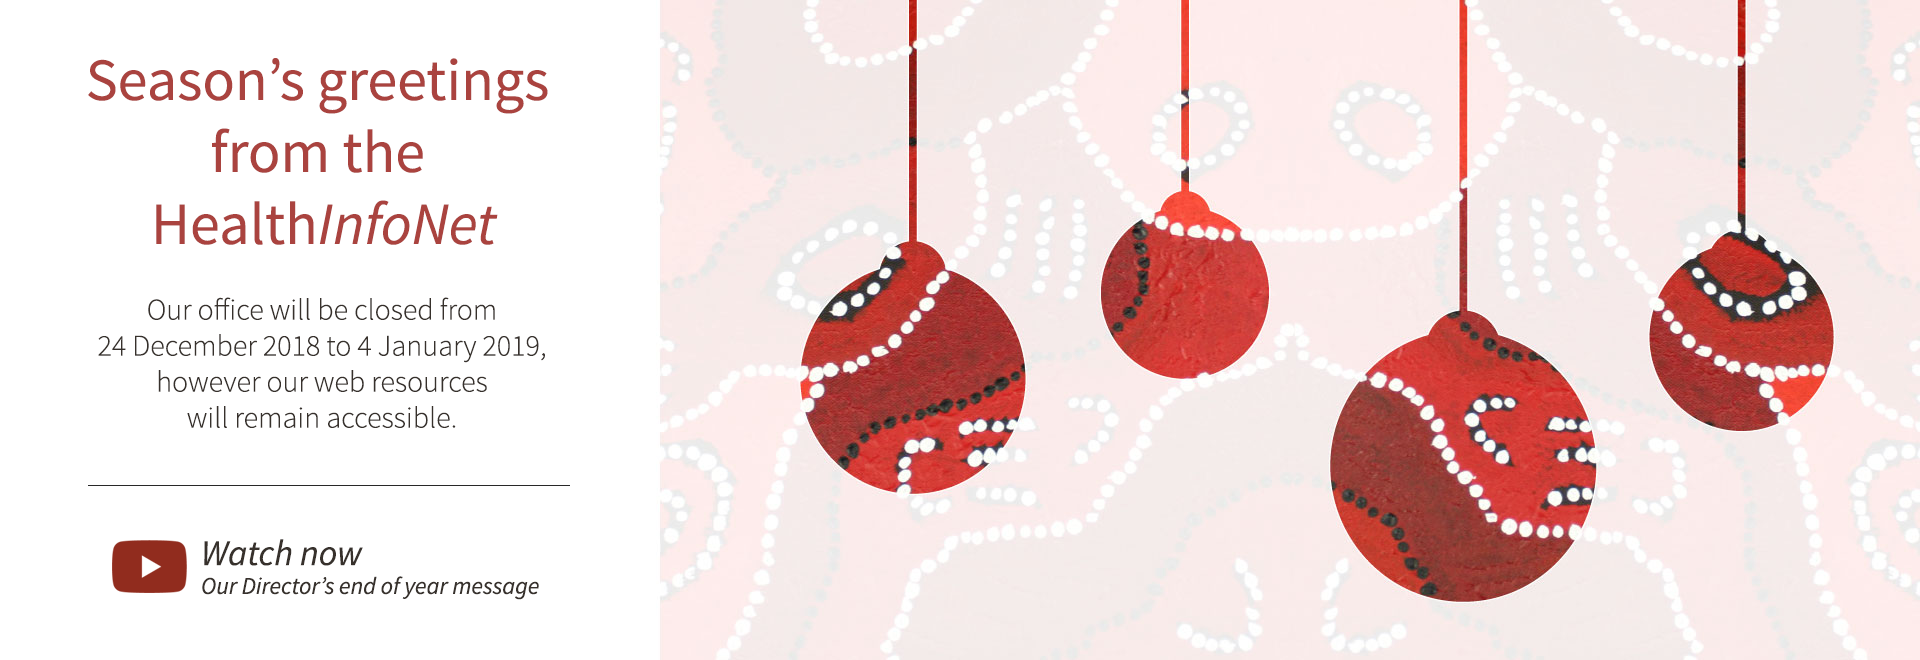 Seasons Greetings from the HealthInfoNet